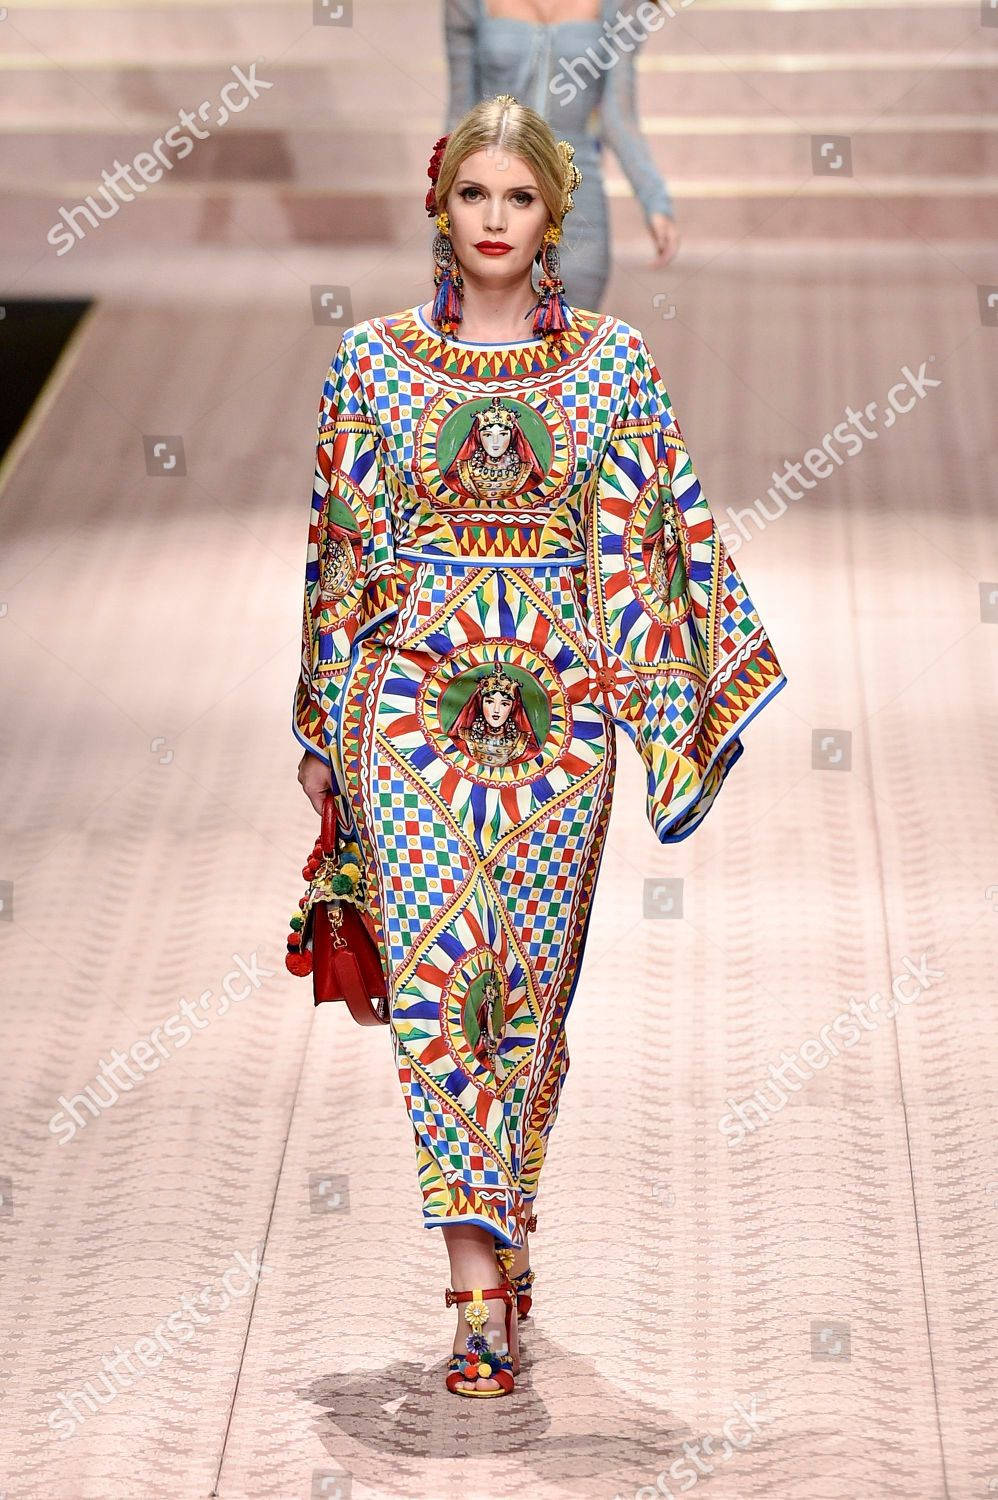 98d53508 Dolce & Gabbana show, Runway, Spring Summer 2019, Milan Fashion Week, Italy  Stock Image by SGPITALIA for editorial use, Sep 23, 2018